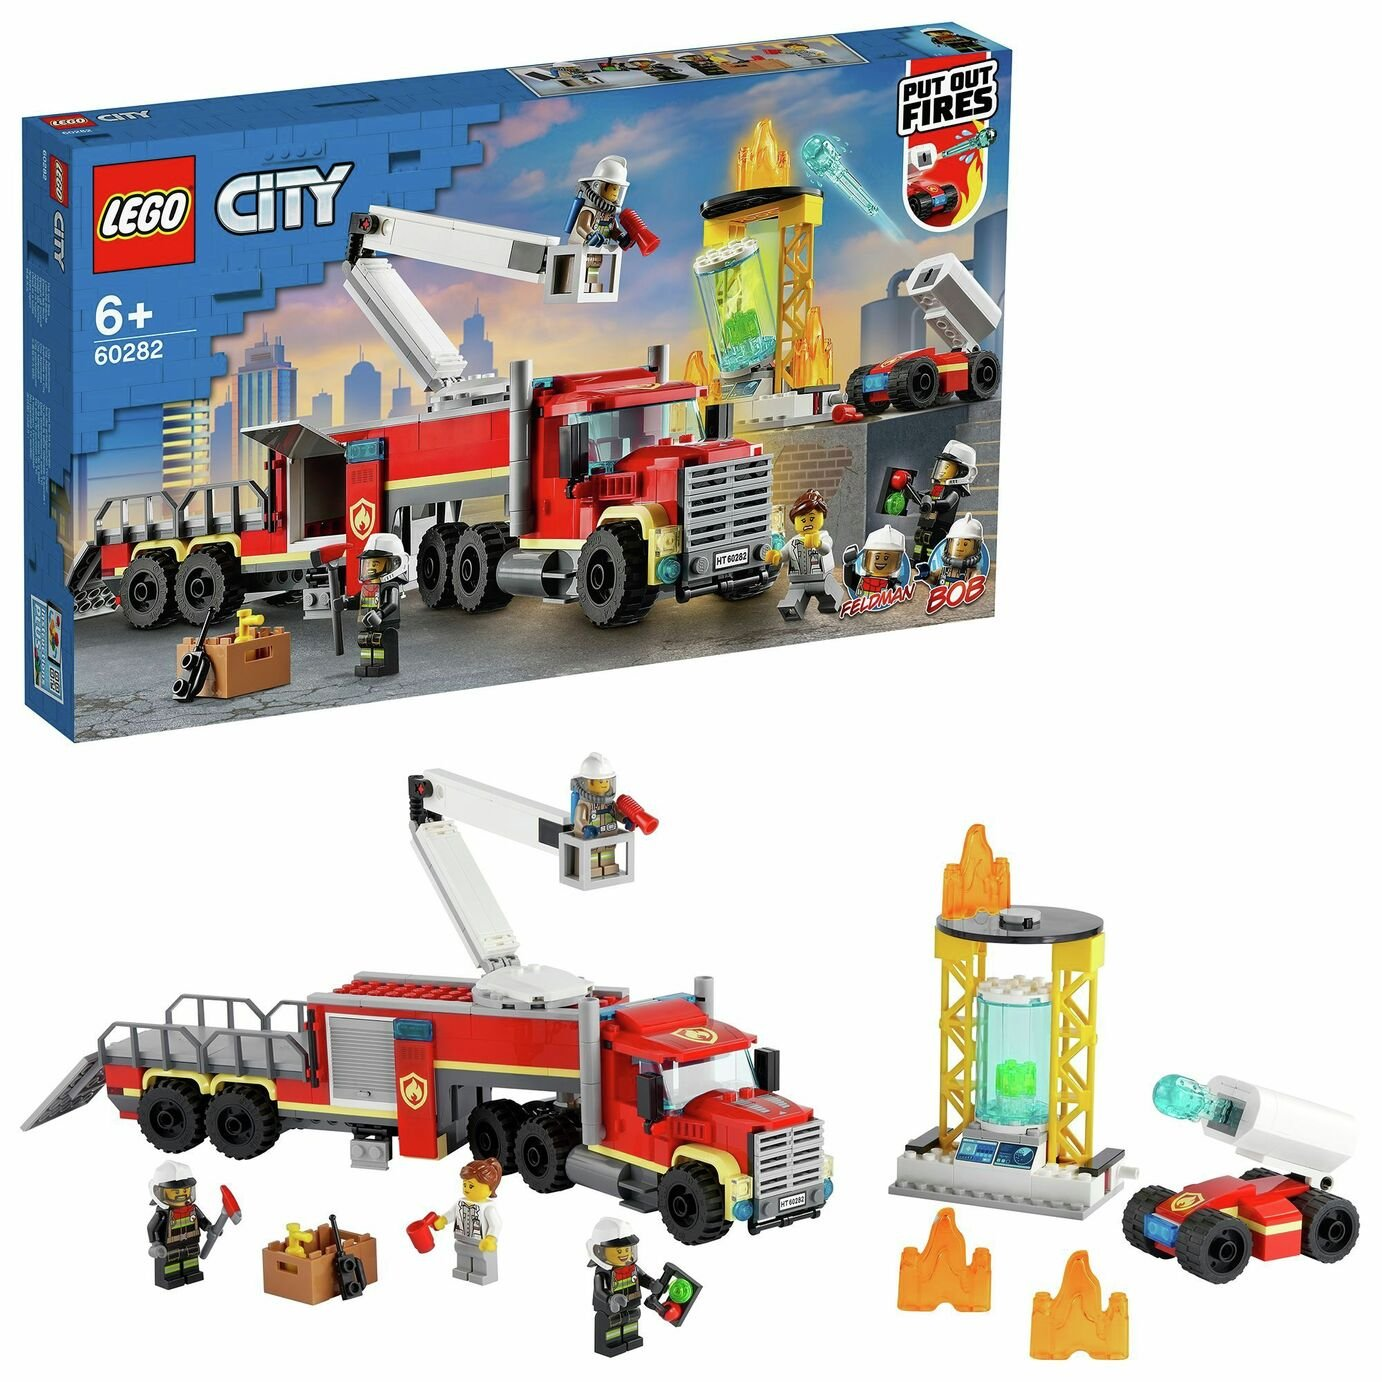 LEGO City Fire Command Unit with Toy Fire Engine 60282